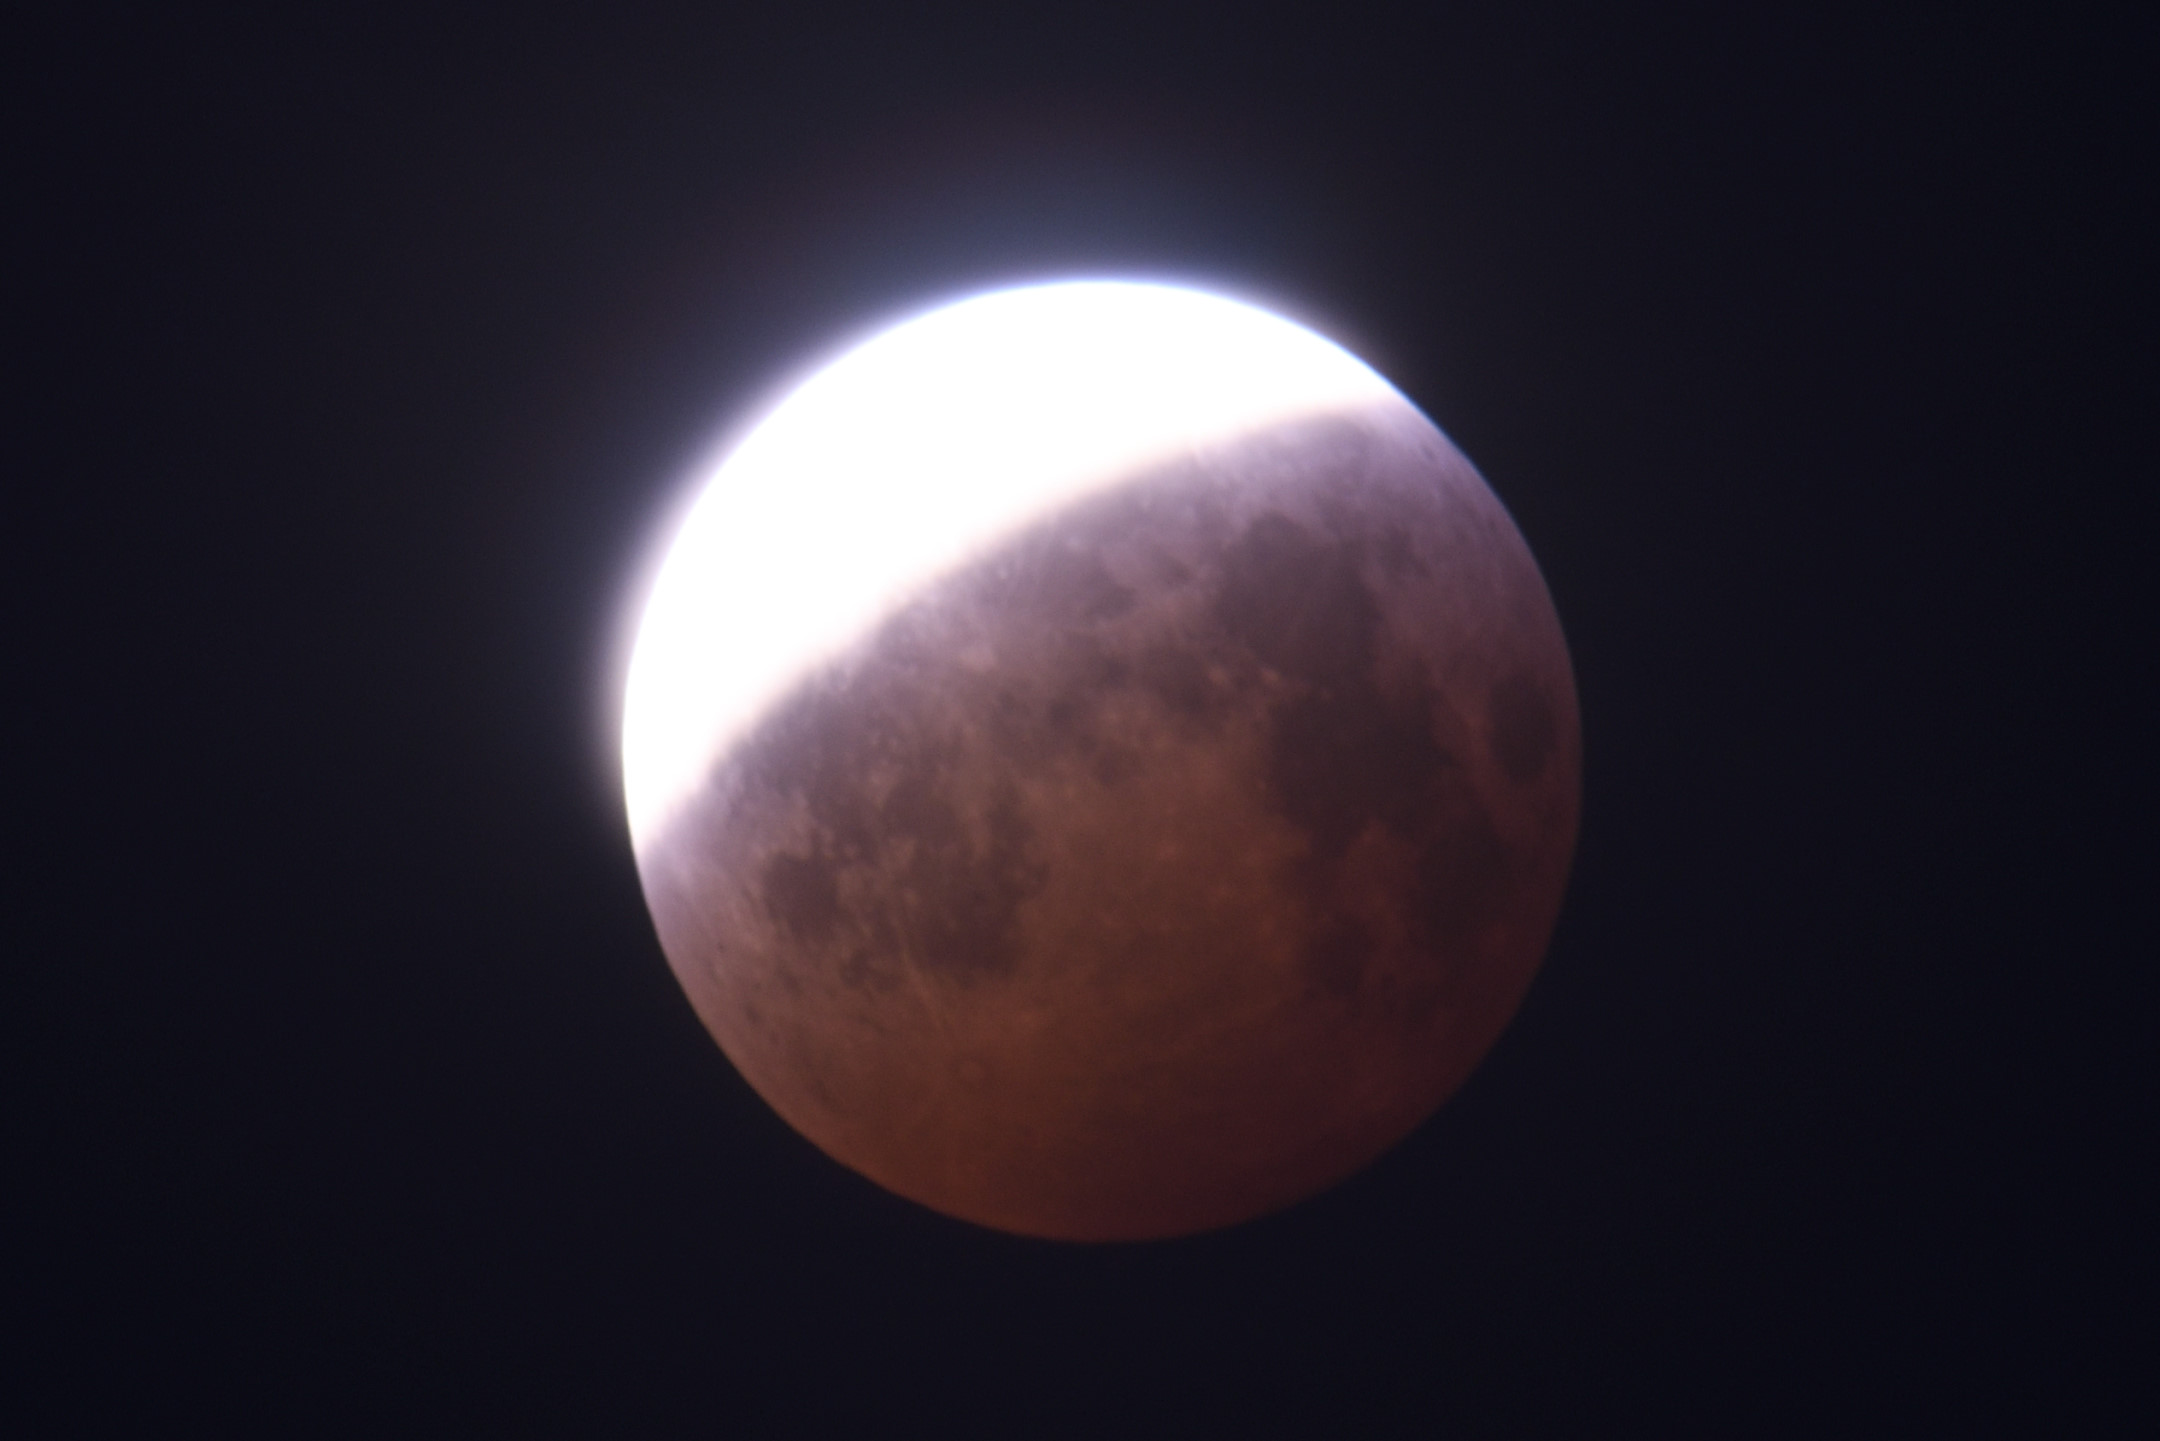 2019-01-21 Lunar eclipse by Magnus Norden